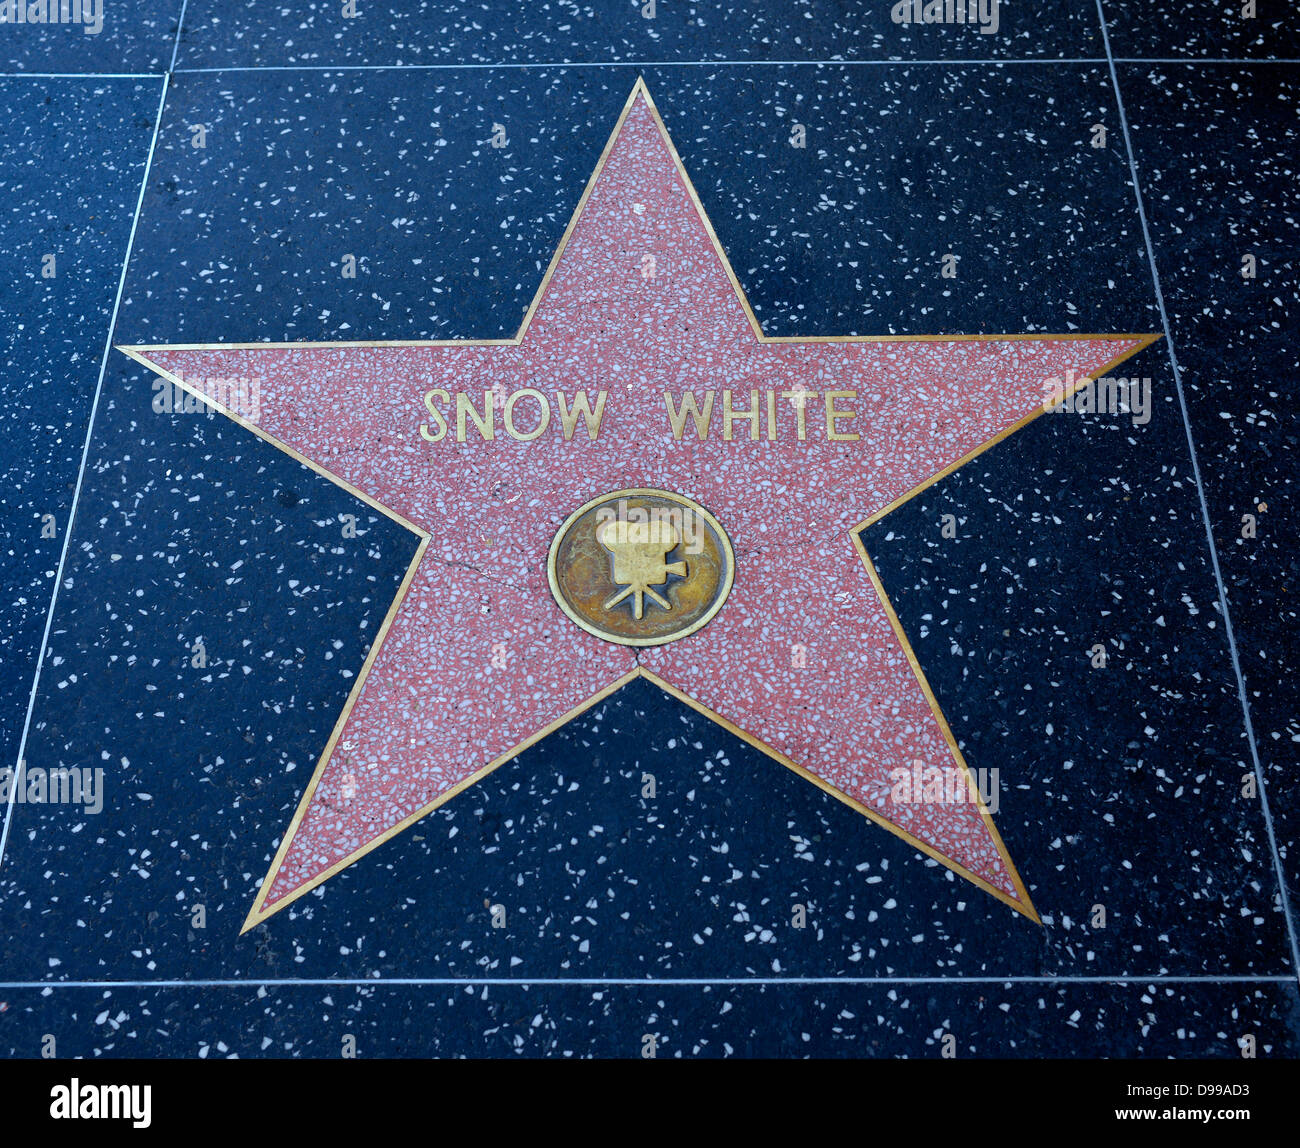 Terrazzo star for artists Snow White, category Film, Drumming of Fame, Hollywood boulevard, Hollywood, Los Angeles, - Stock Image